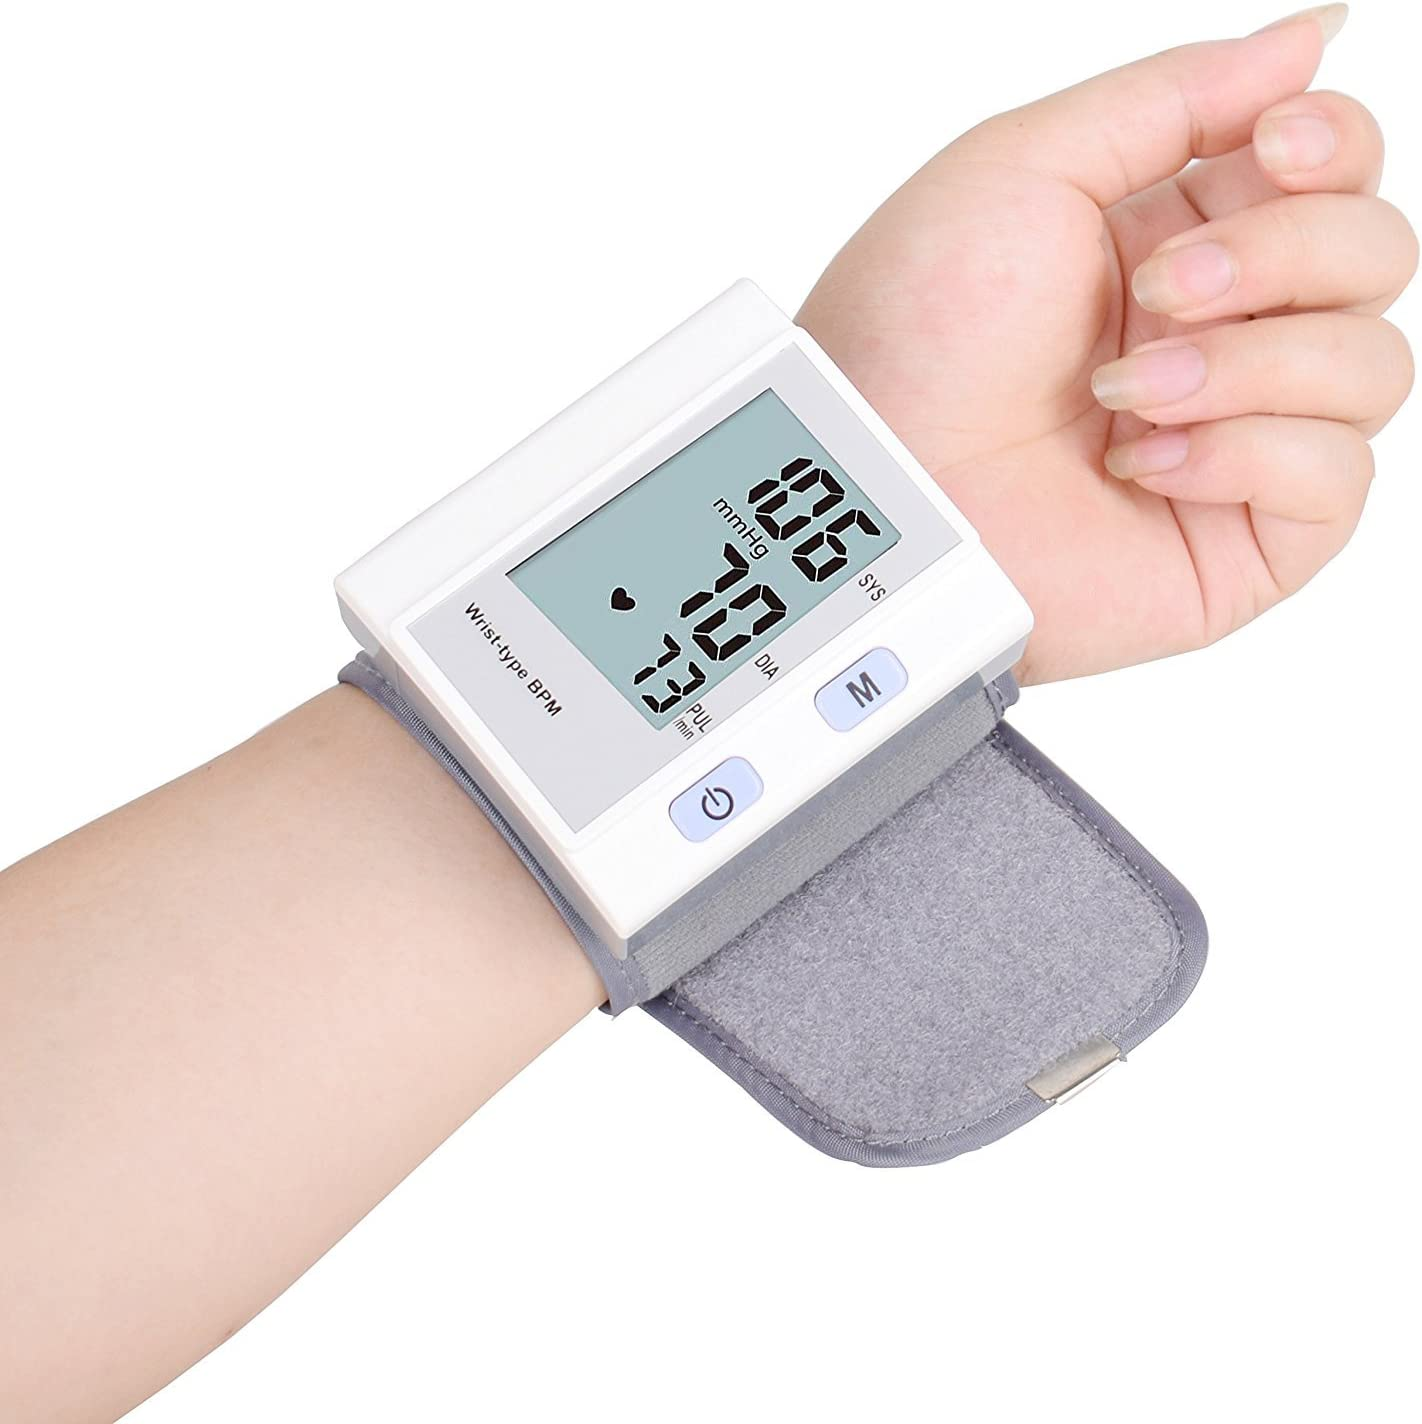 BP Cuff Wrist Automatic Blood Pressure Machine with LED Screen Display Health Monitors, FDA Approved One Touch Operation Blood Pressure Cuff Device